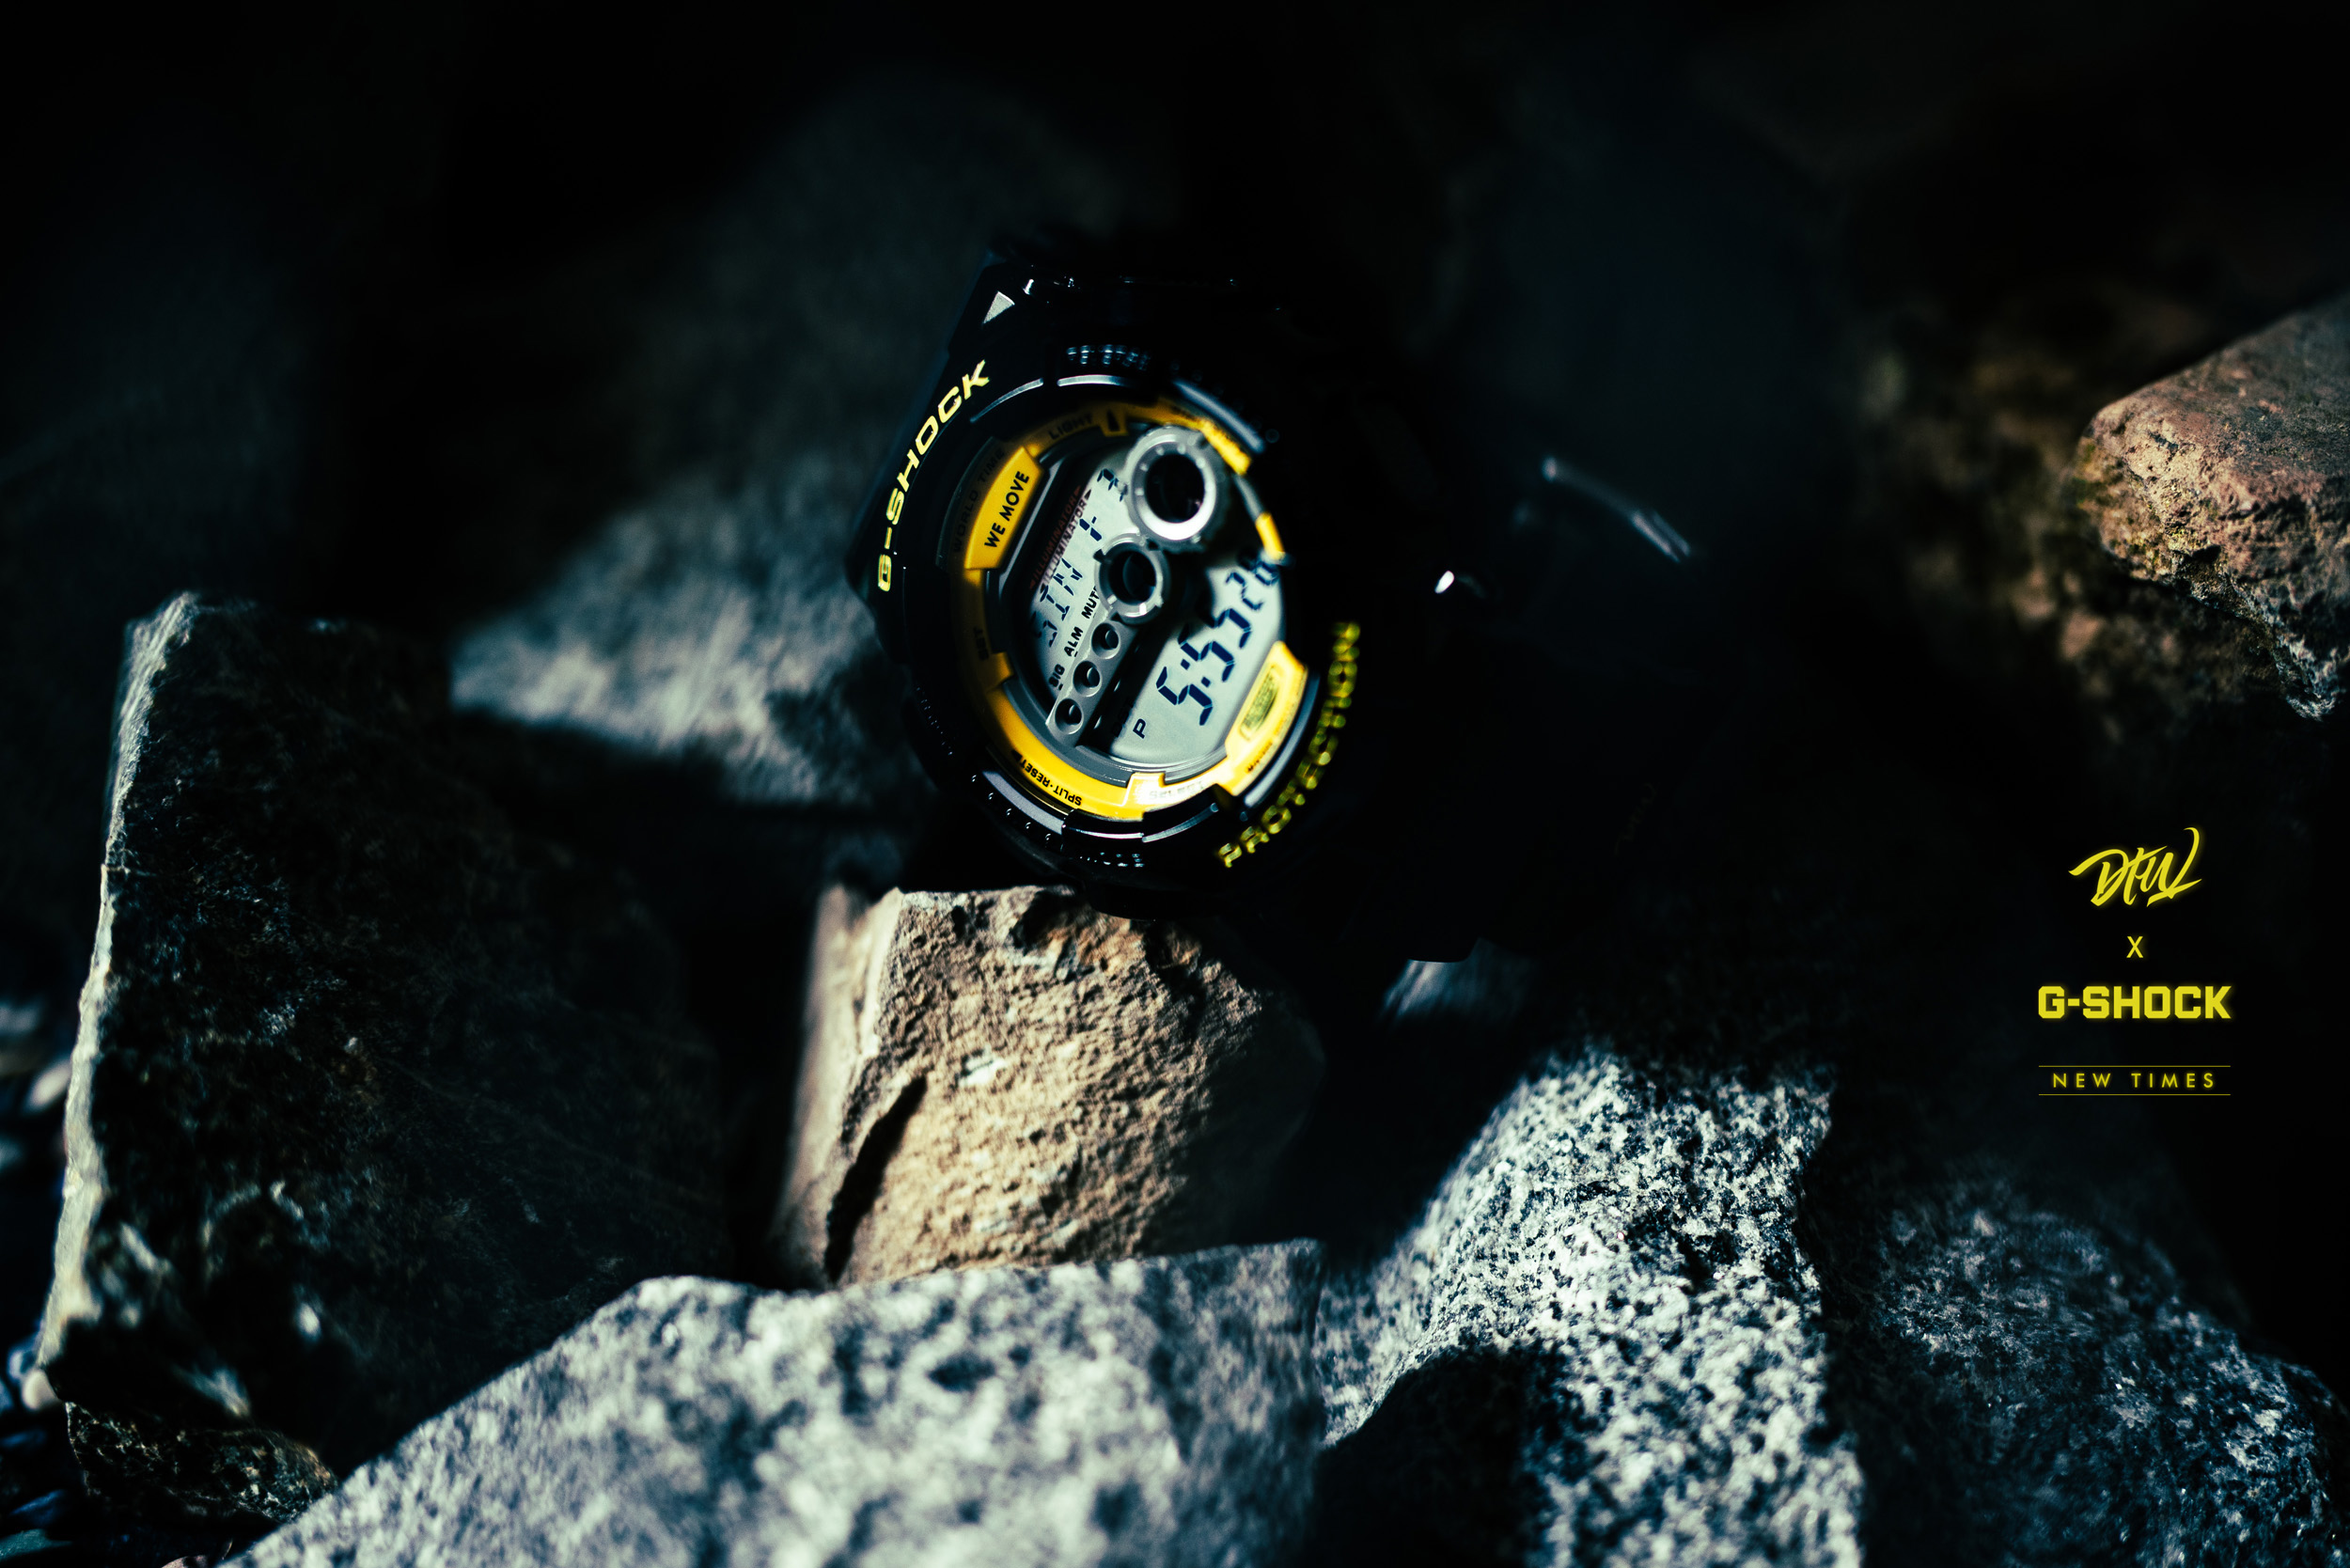 DTW x G-Shock Releases 20/01/17